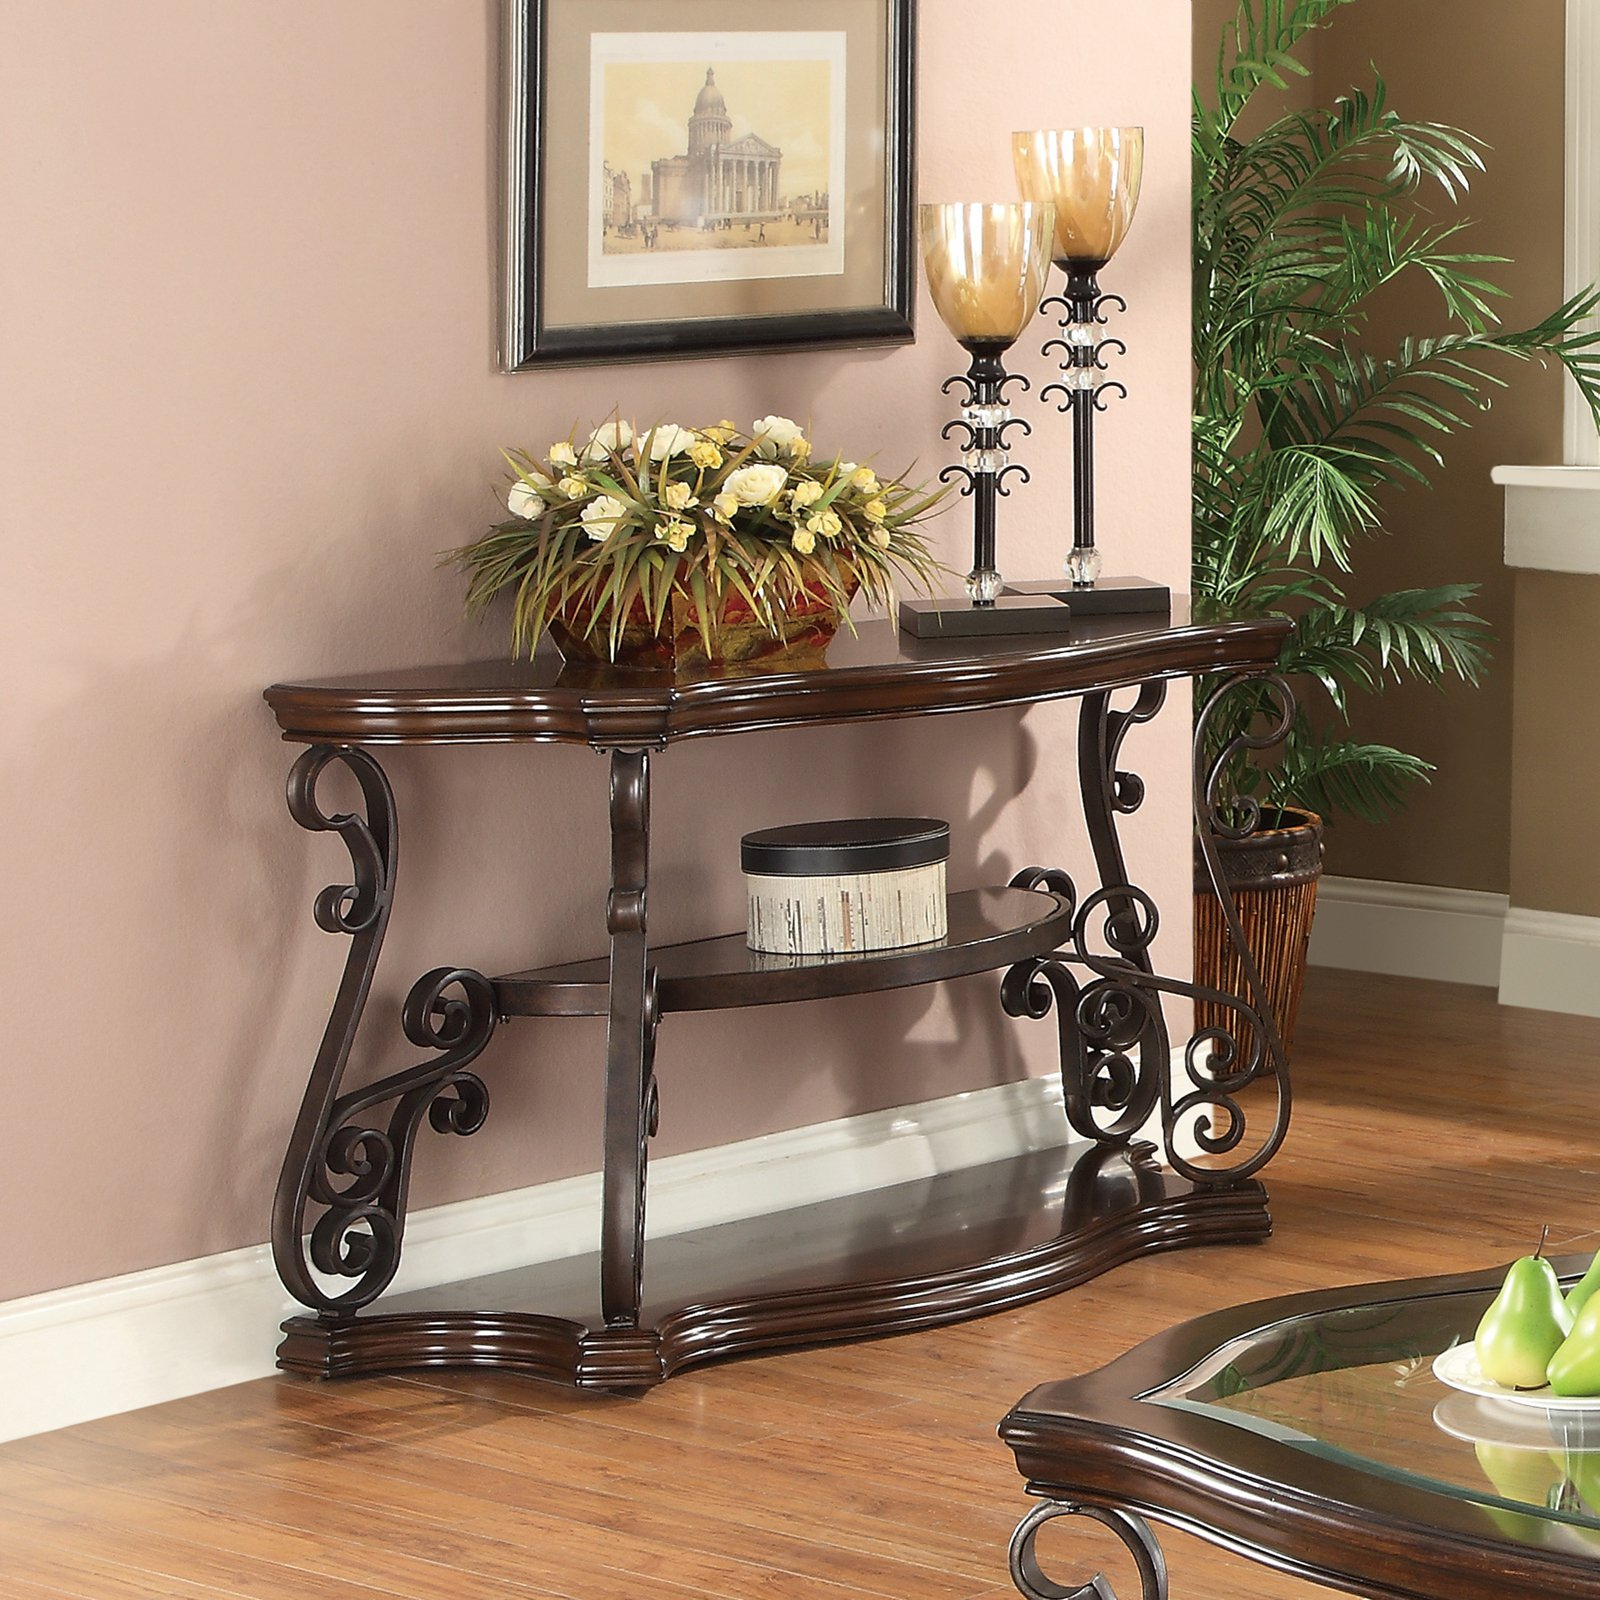 Coaster Furniture Crescent Sofa Table with 2 Shelves